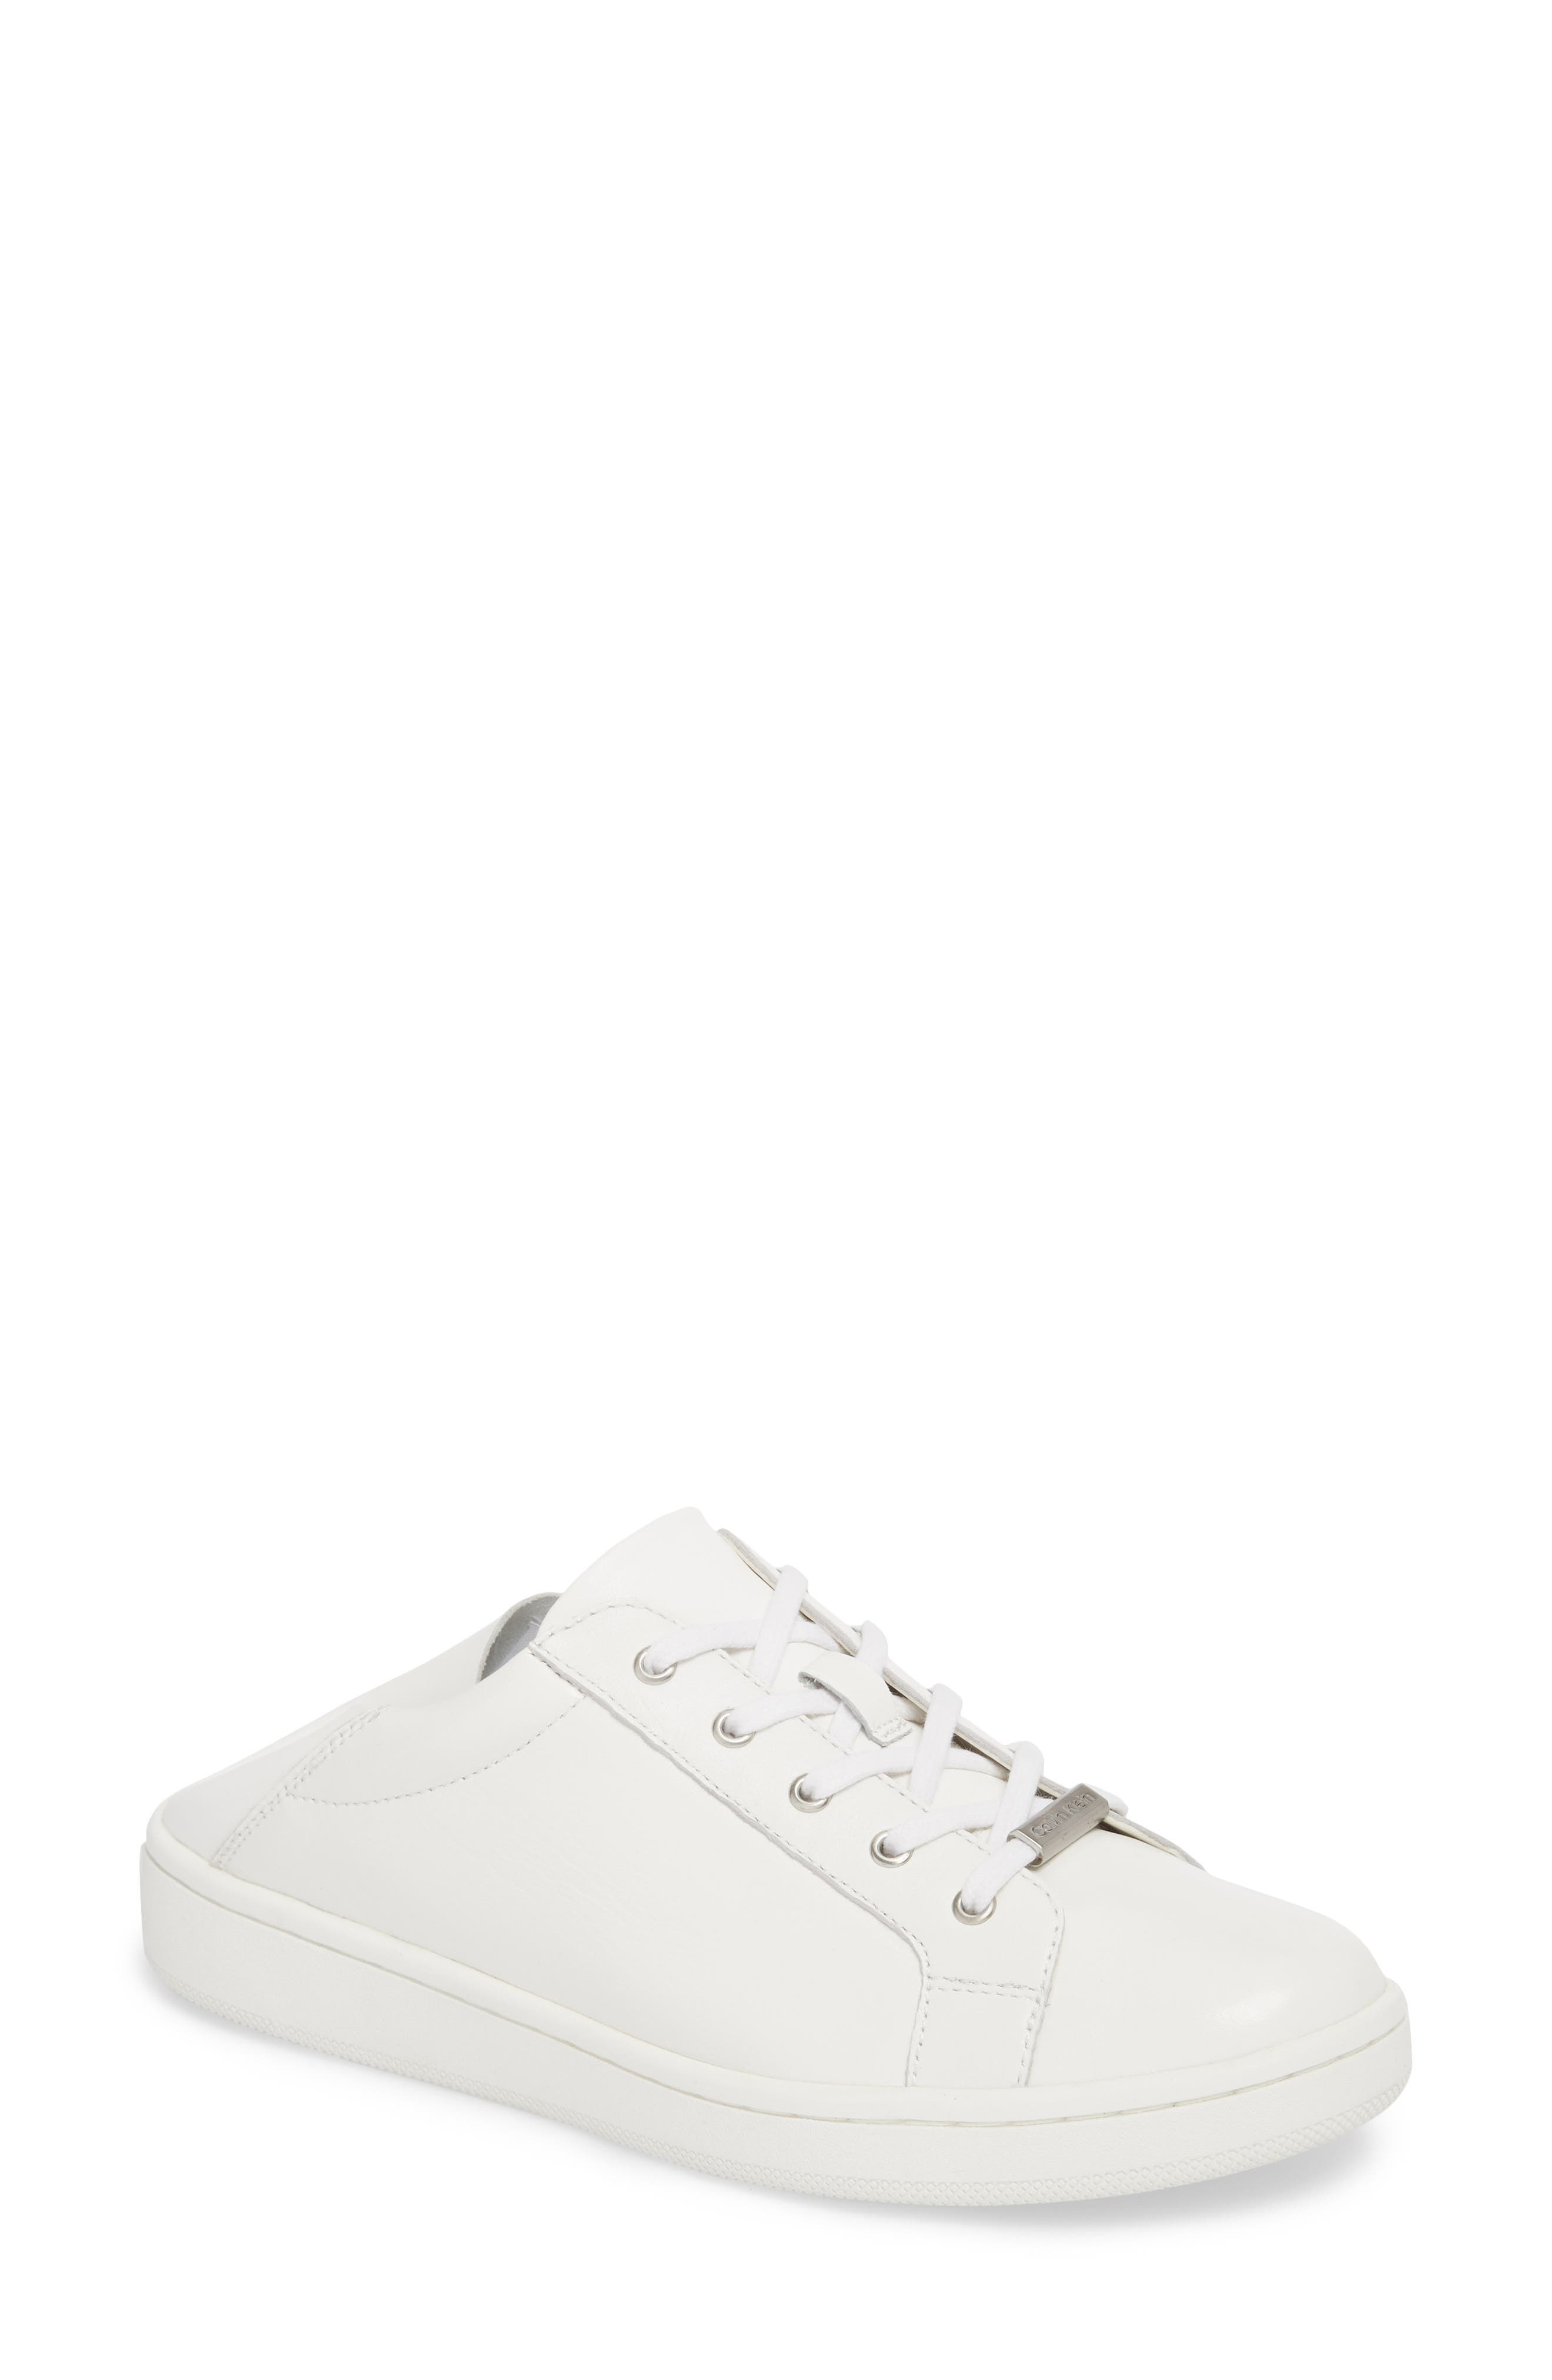 Danica Convertible Sneaker,                             Main thumbnail 1, color,                             White/ White Leather